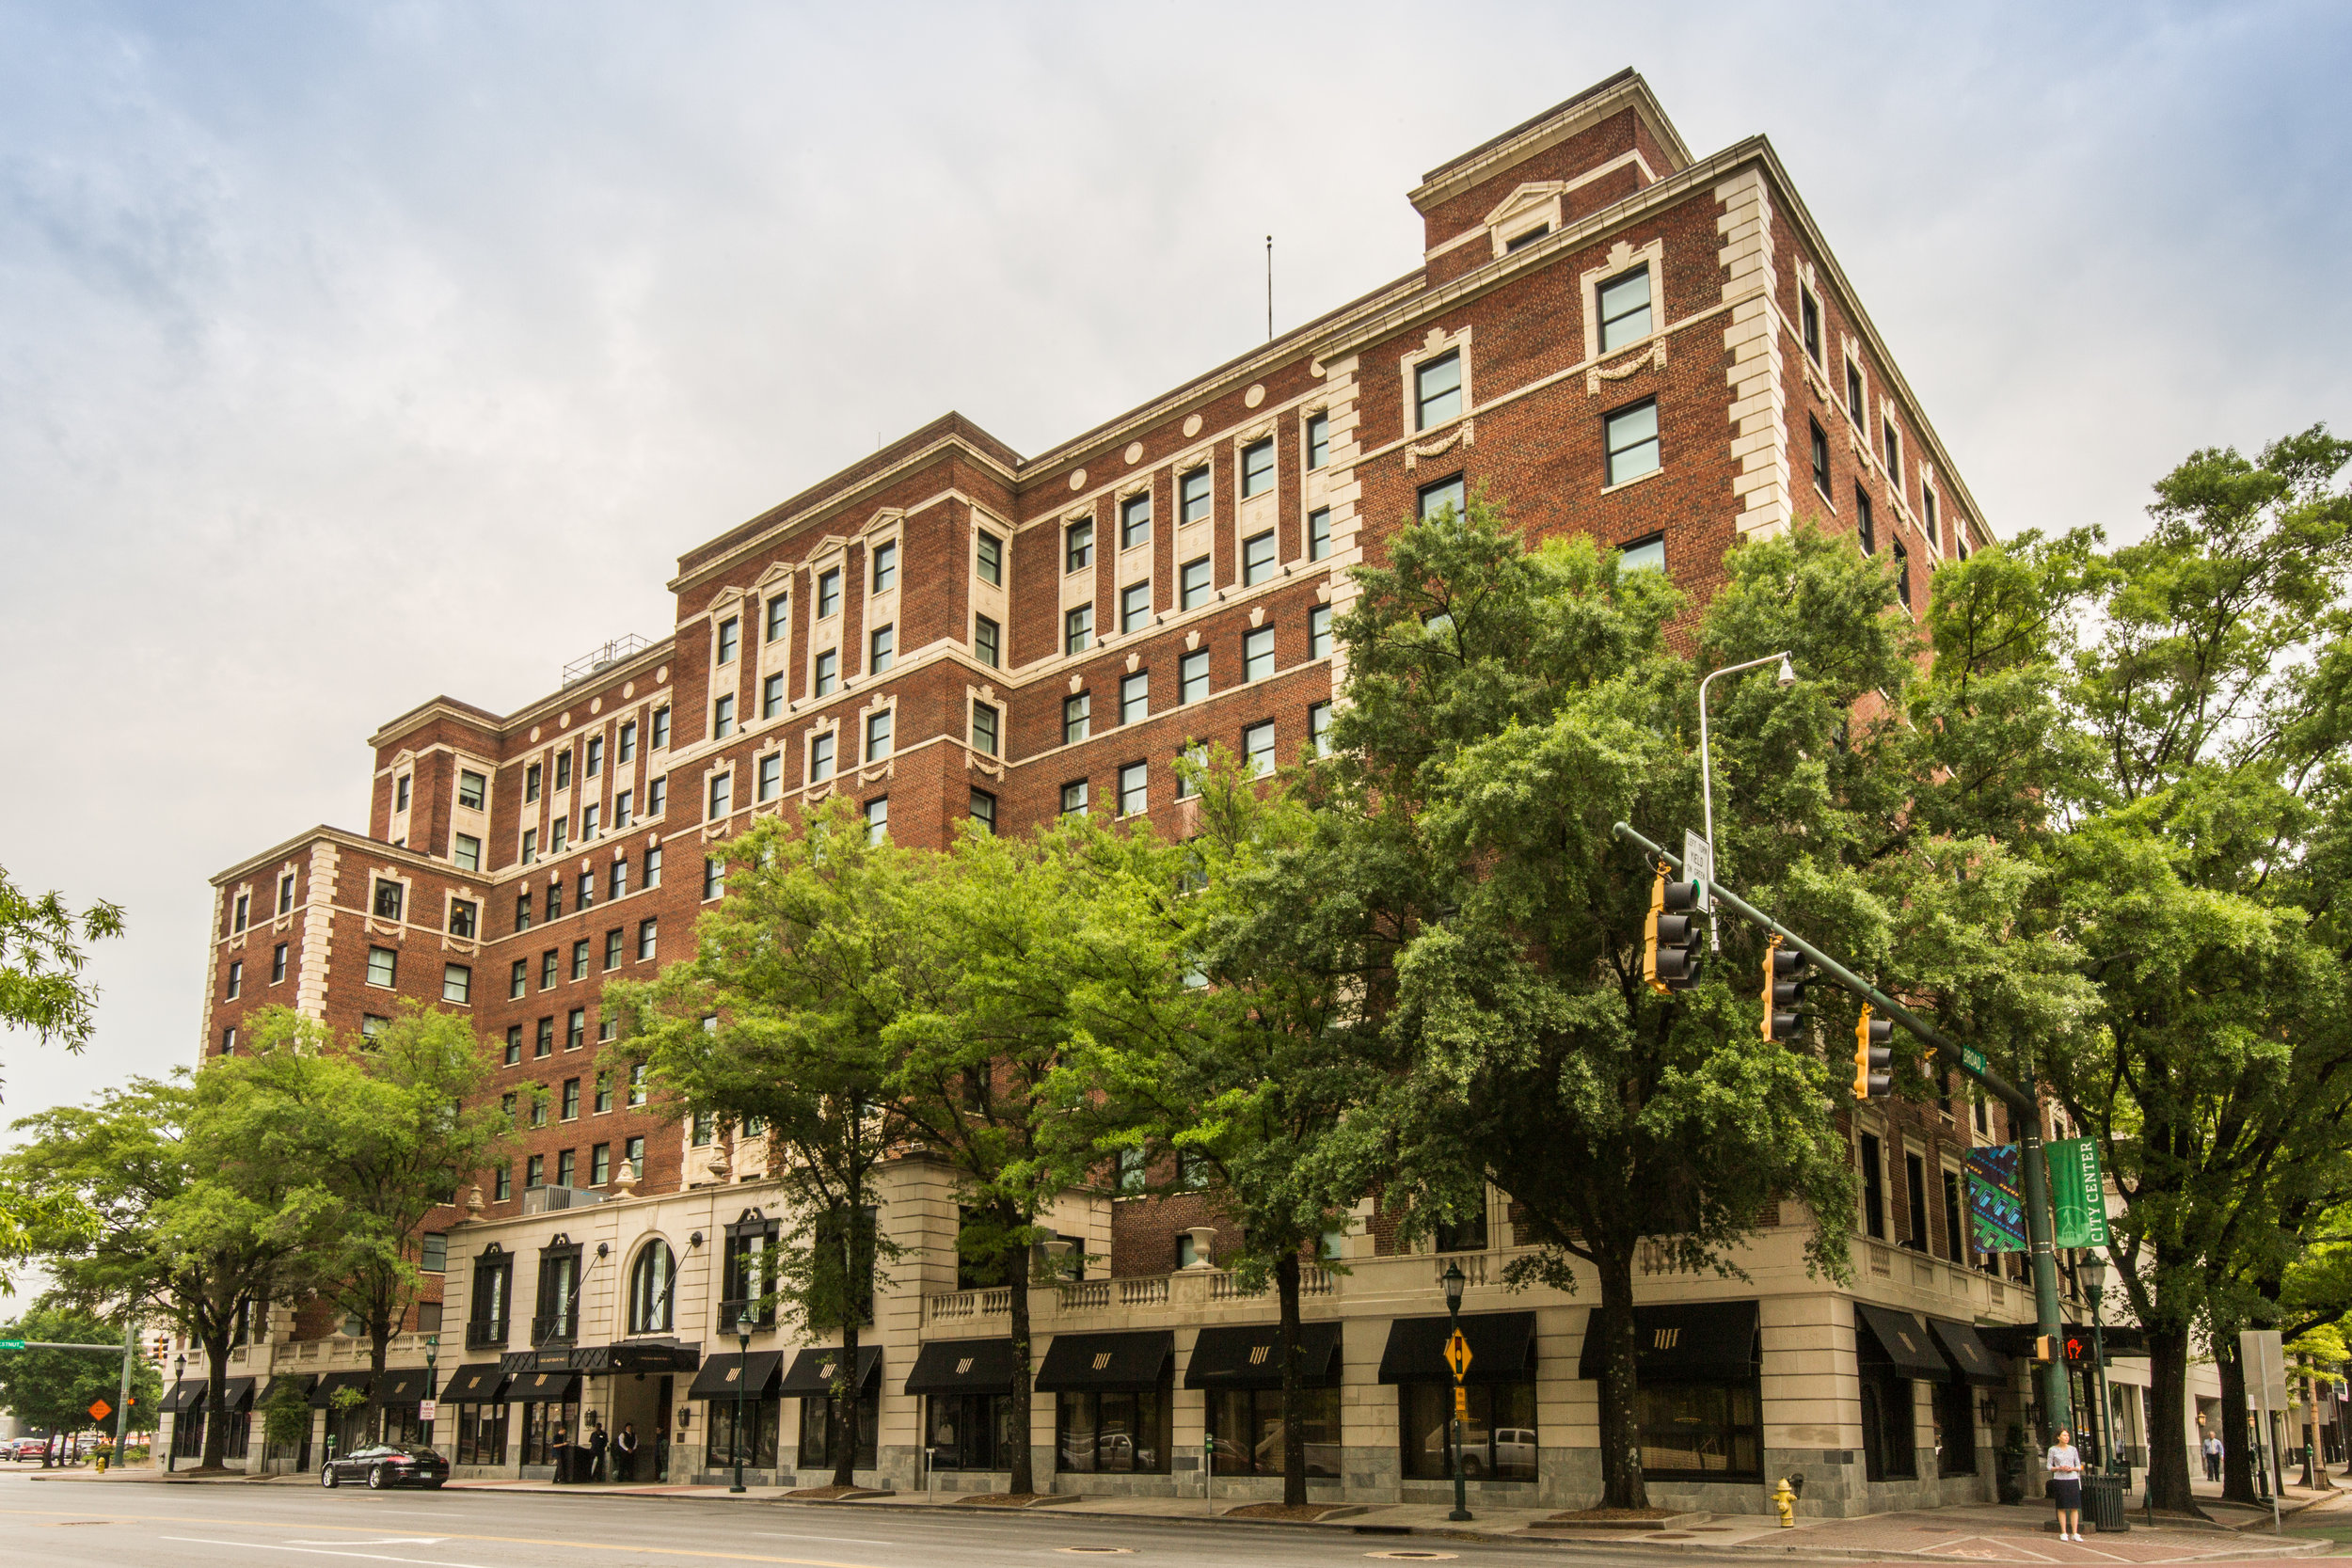 - Read House Hotel107 W M.L.K. Blvd Chattanooga, TN 37402423.266.4121Book here